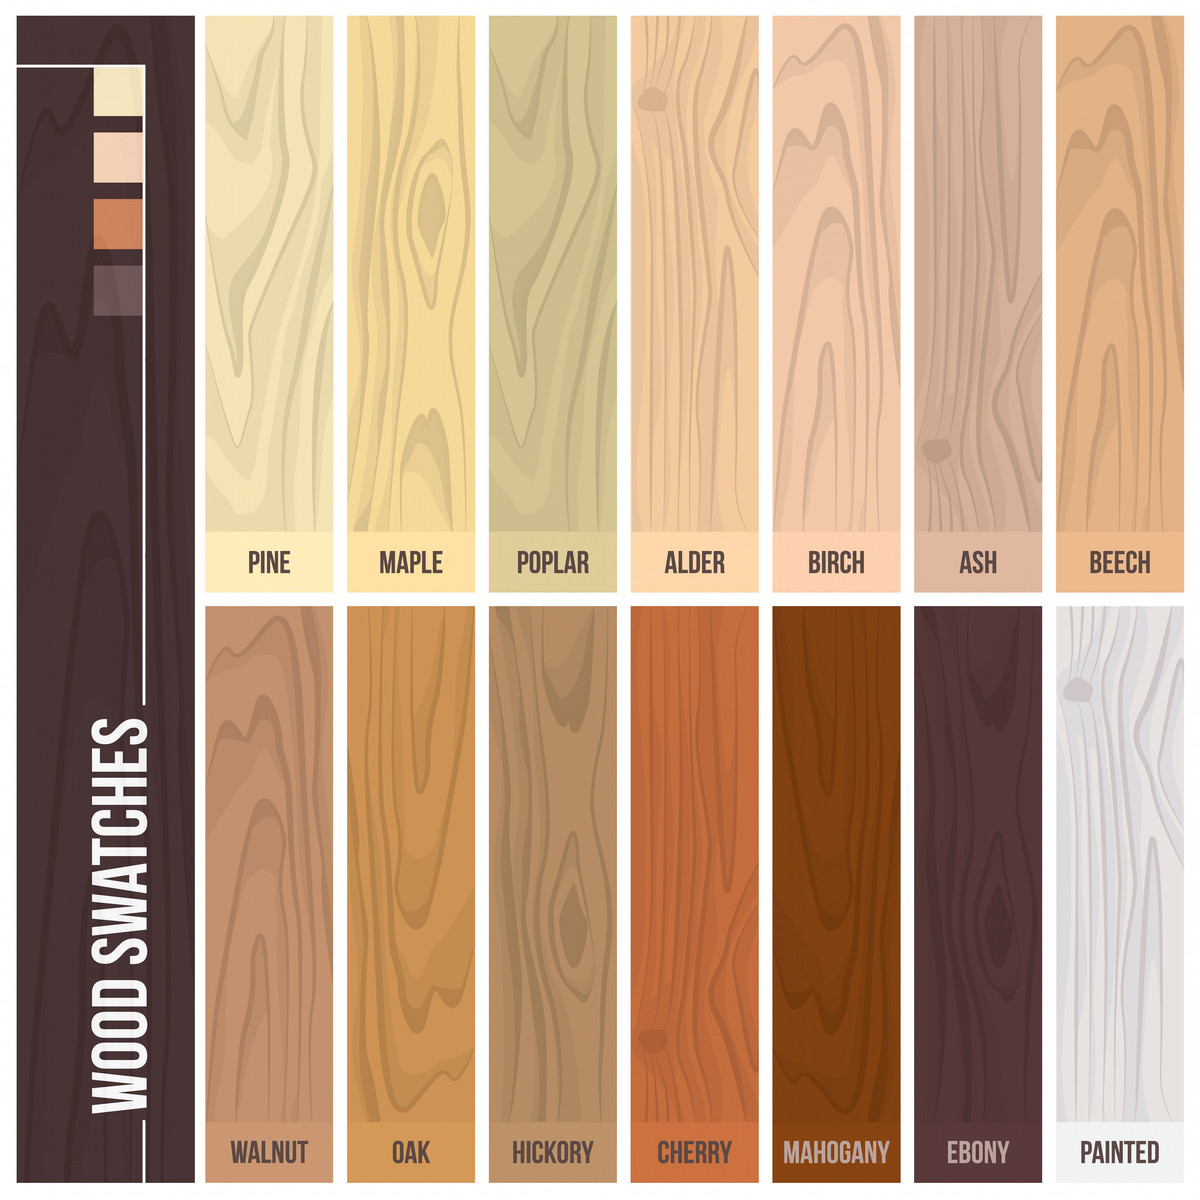 different colored hardwood floors same house of 12 types of hardwood flooring species styles edging dimensions throughout types of hardwood flooring illustrated guide